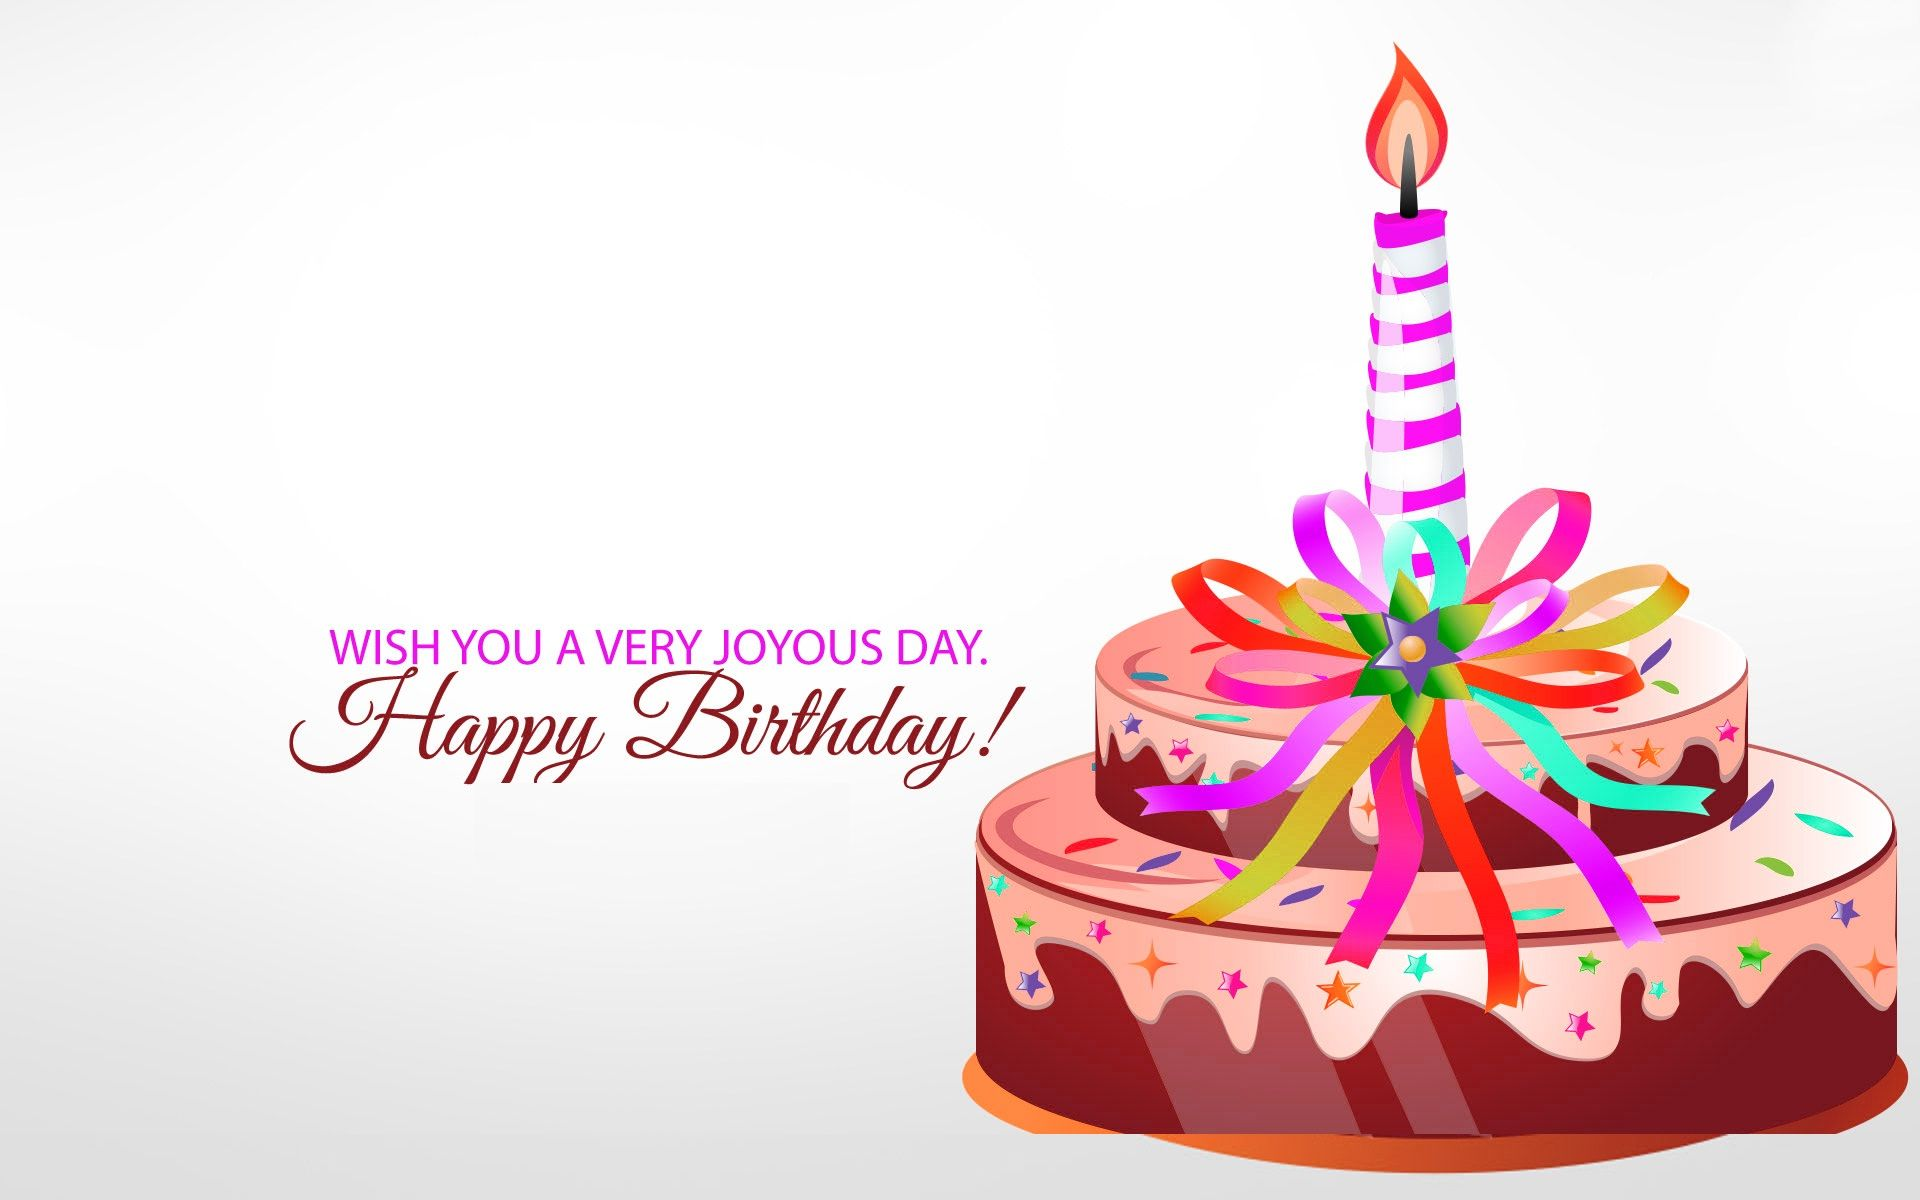 Happy Birthday Wishes Wallpaperimagespicturesphotoshd Wallpapers